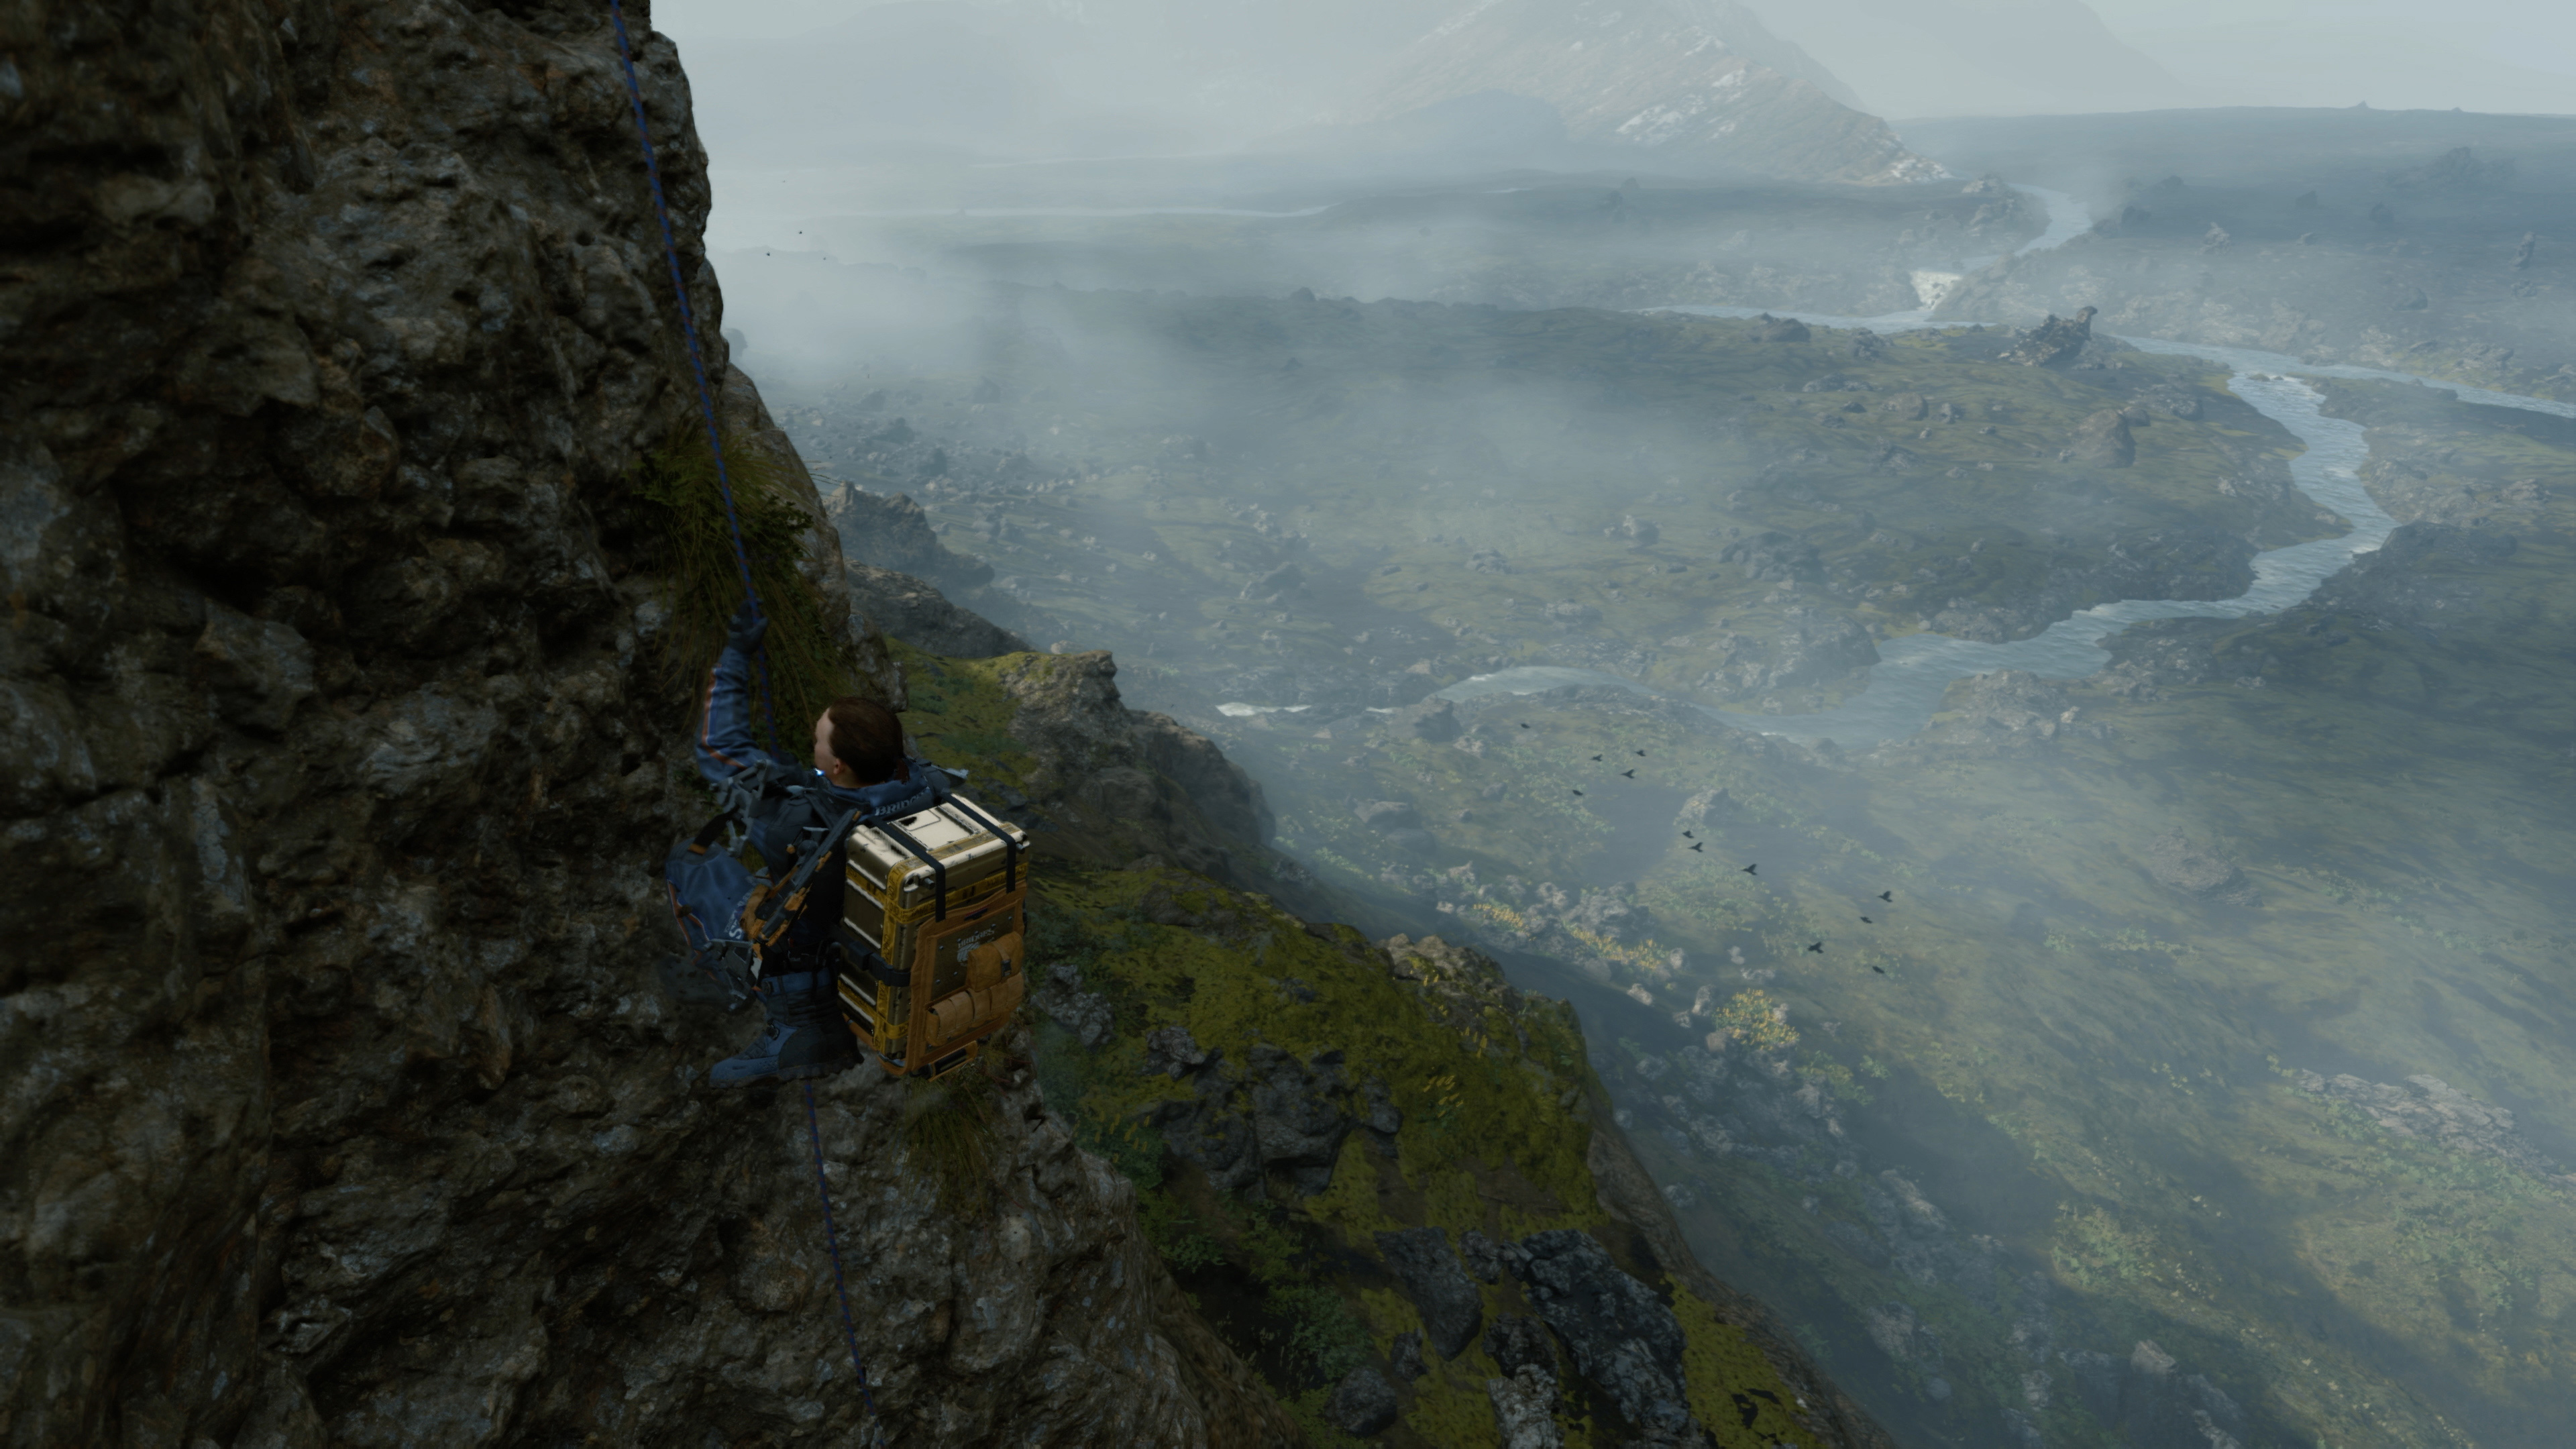 Here is the E3 2018 trailer for Death Stranding